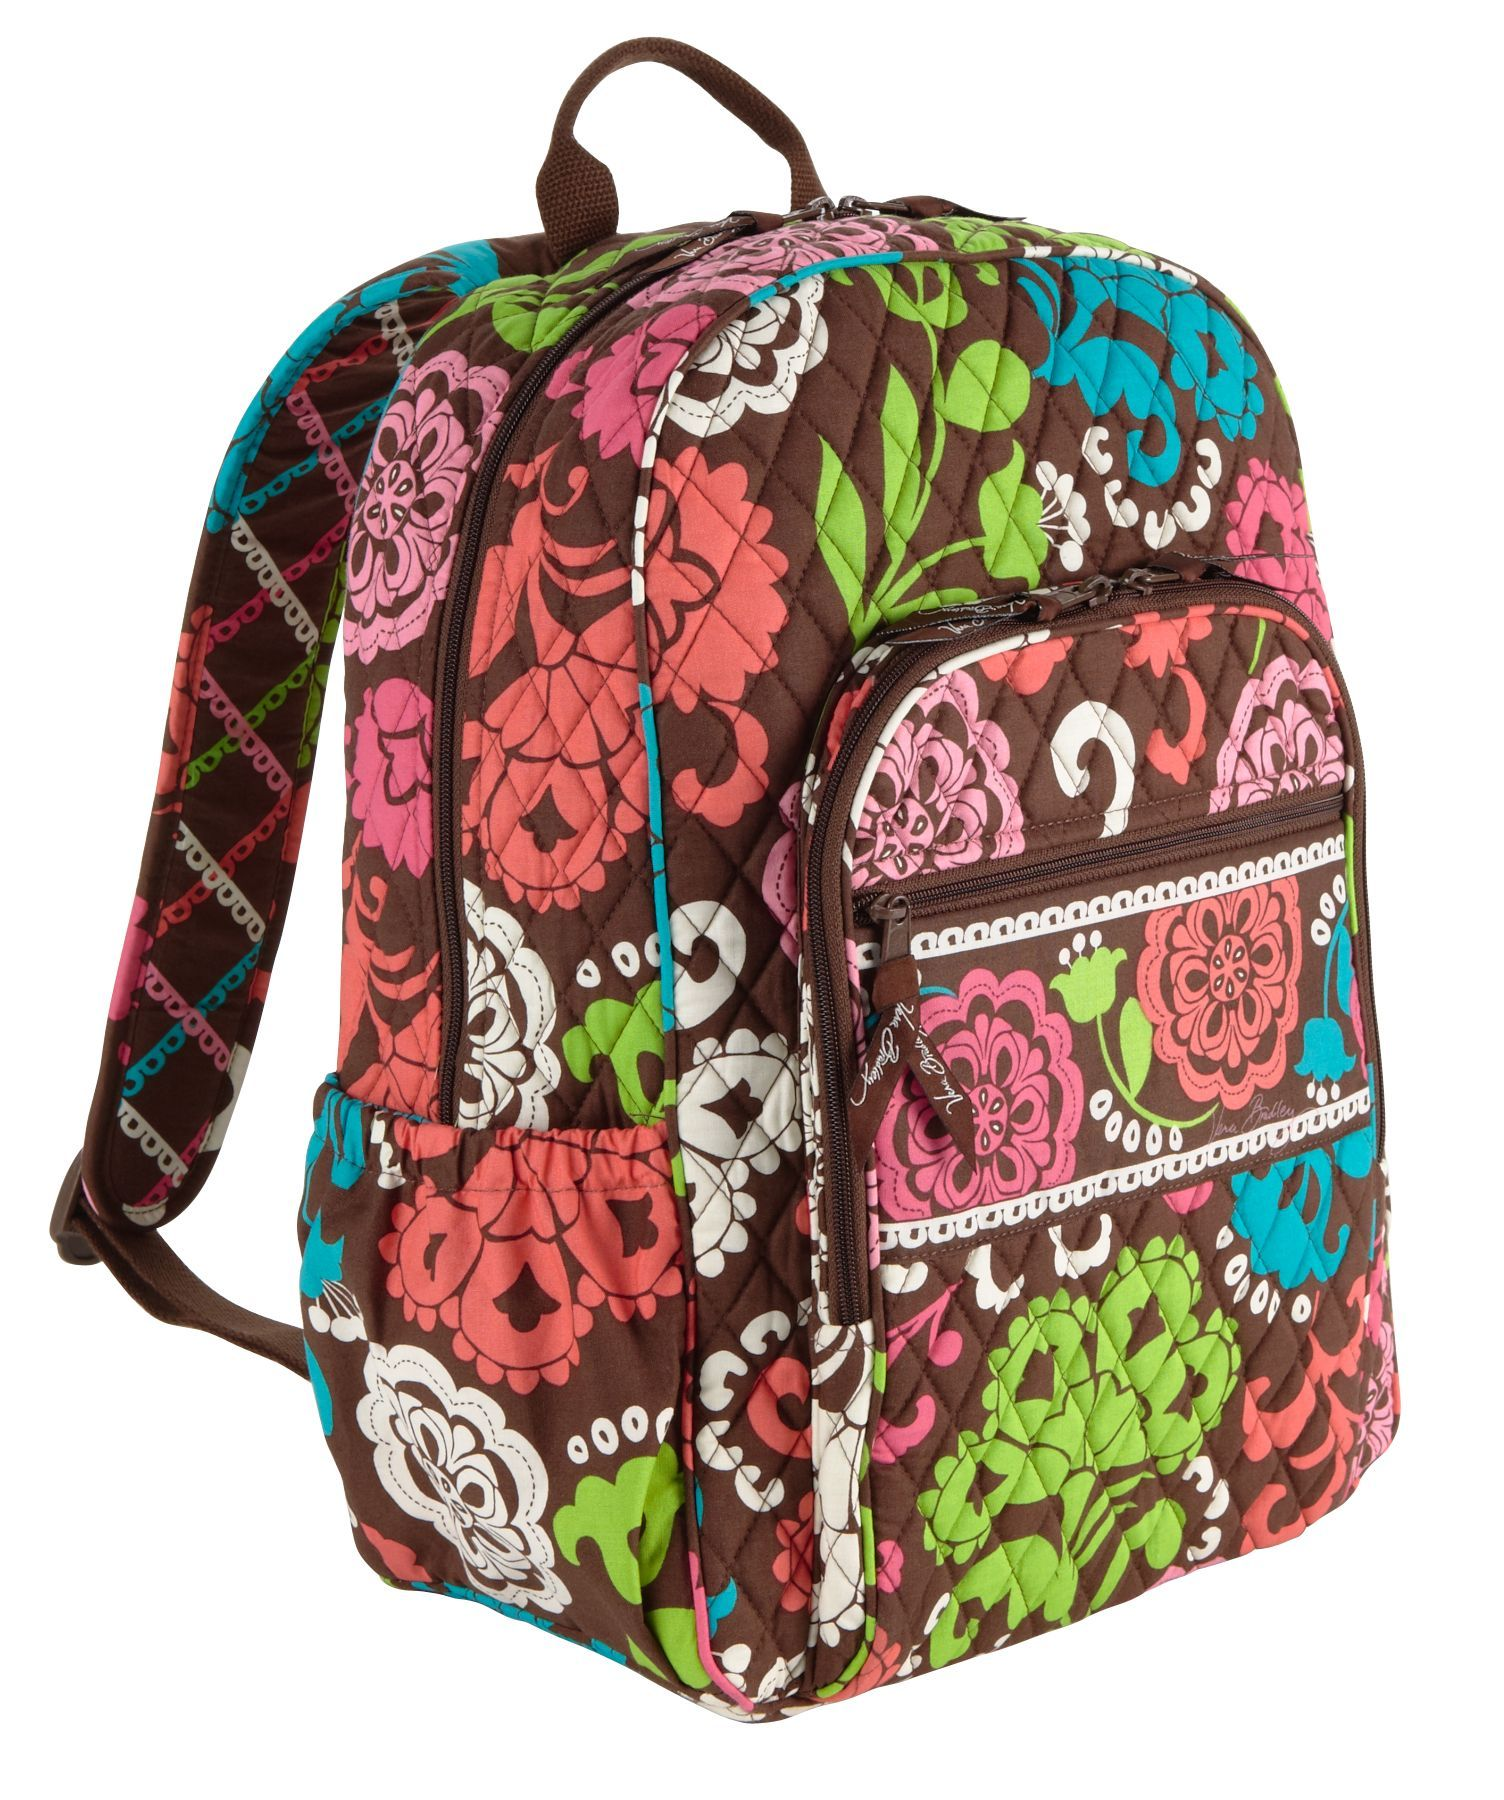 dcc080d3c49e Cheap Vera Bradley Backpacks- Fenix Toulouse Handball